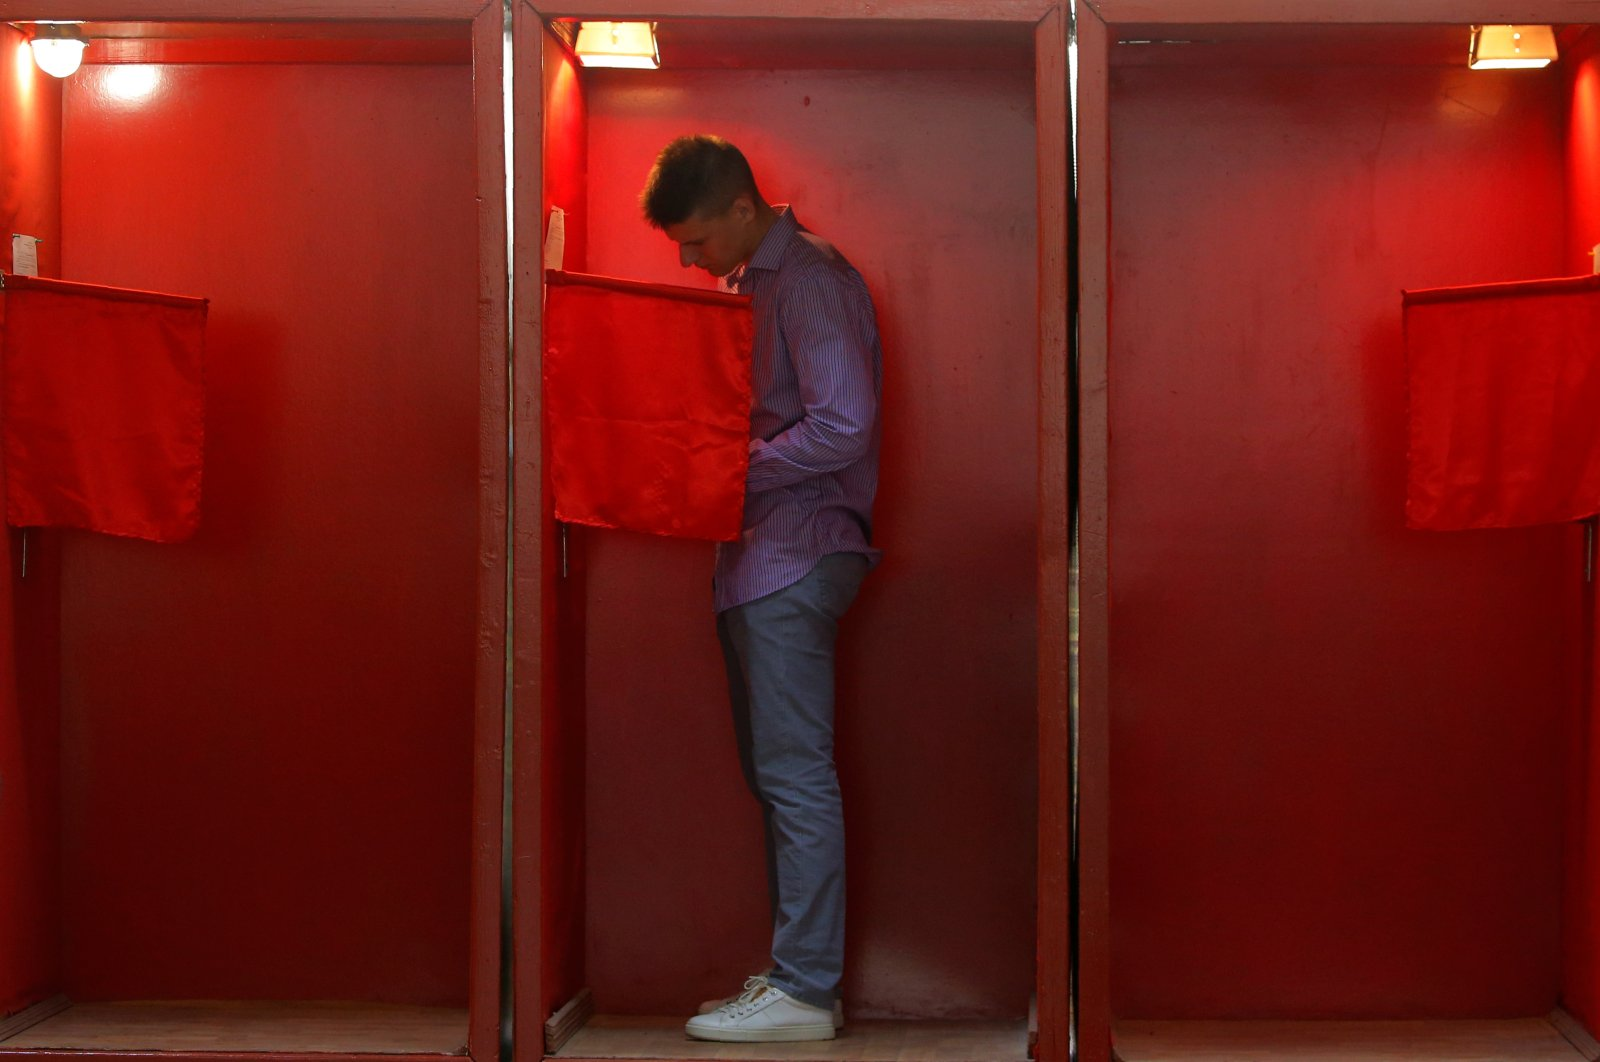 A man stands inside a voting booth during the early voting ahead of the Aug. 9 presidential election at a polling station in Minsk, Belarus, Aug. 4, 2020. (Reuters Photo)